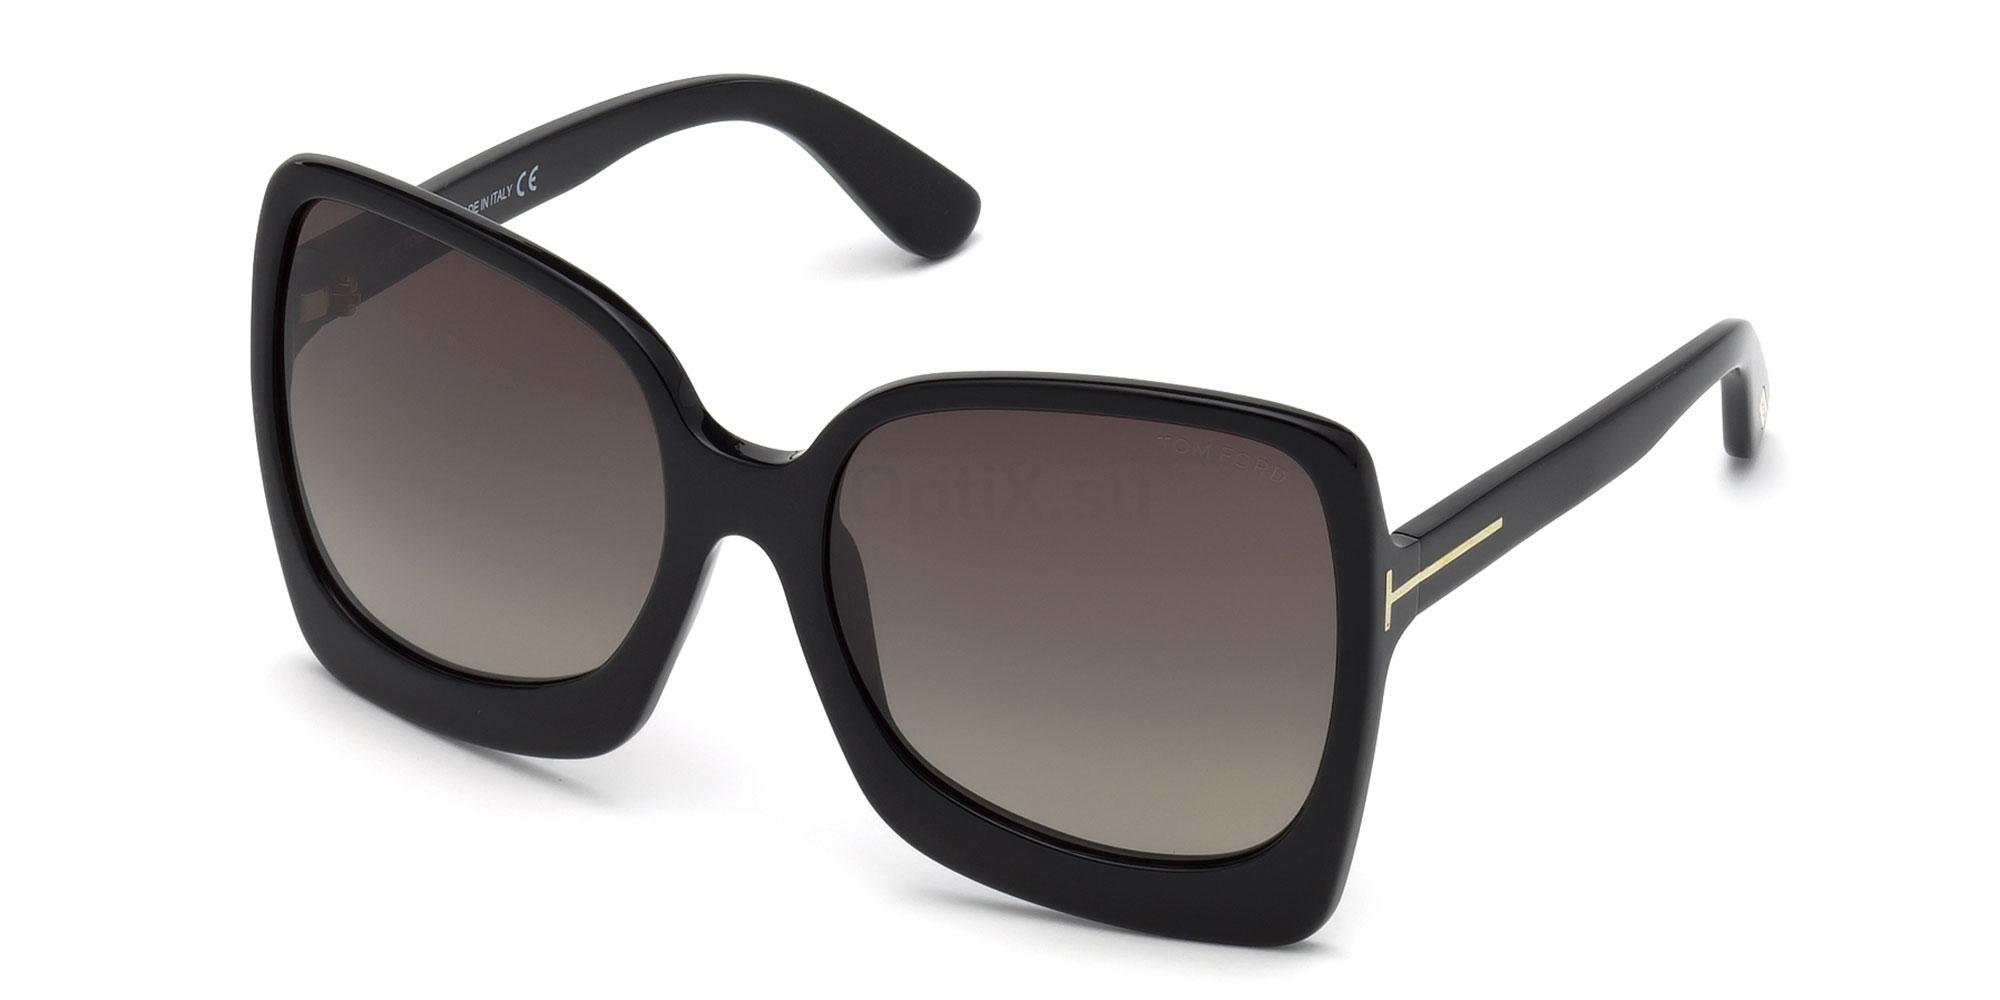 01K FT0618 Sunglasses, Tom Ford